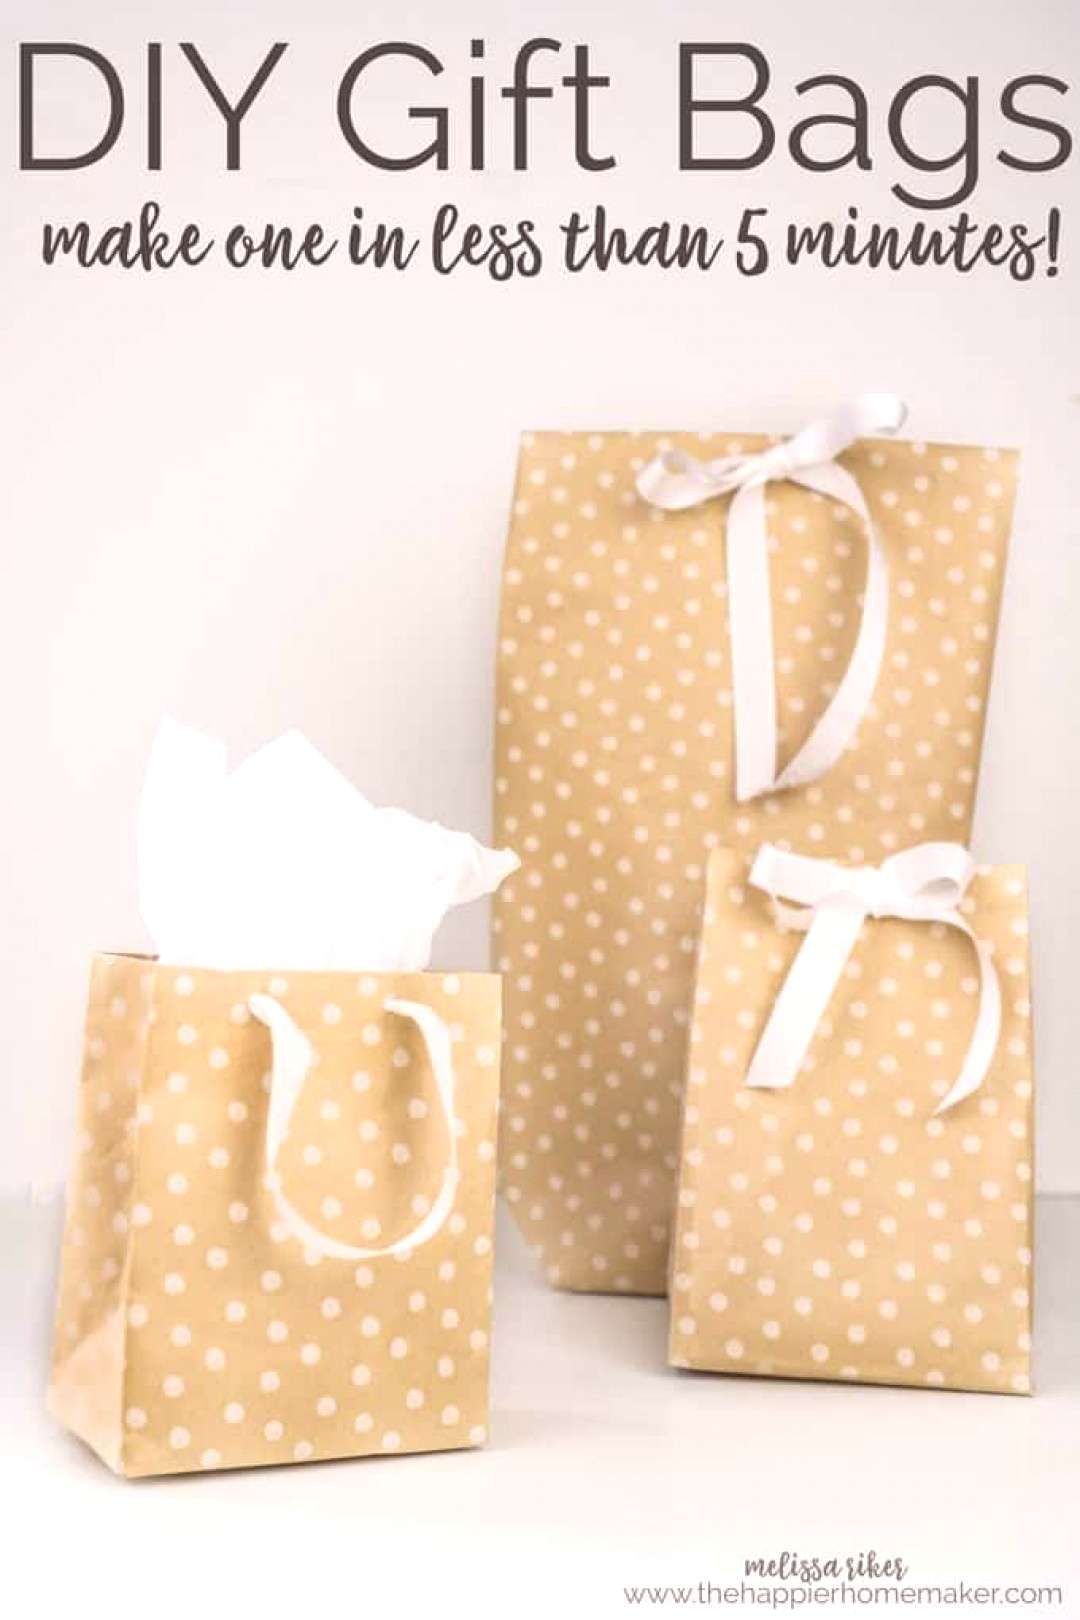 Its easy to learn how to make your own DIY Gift Bags in under 5 minutes using wrapping paper, tape